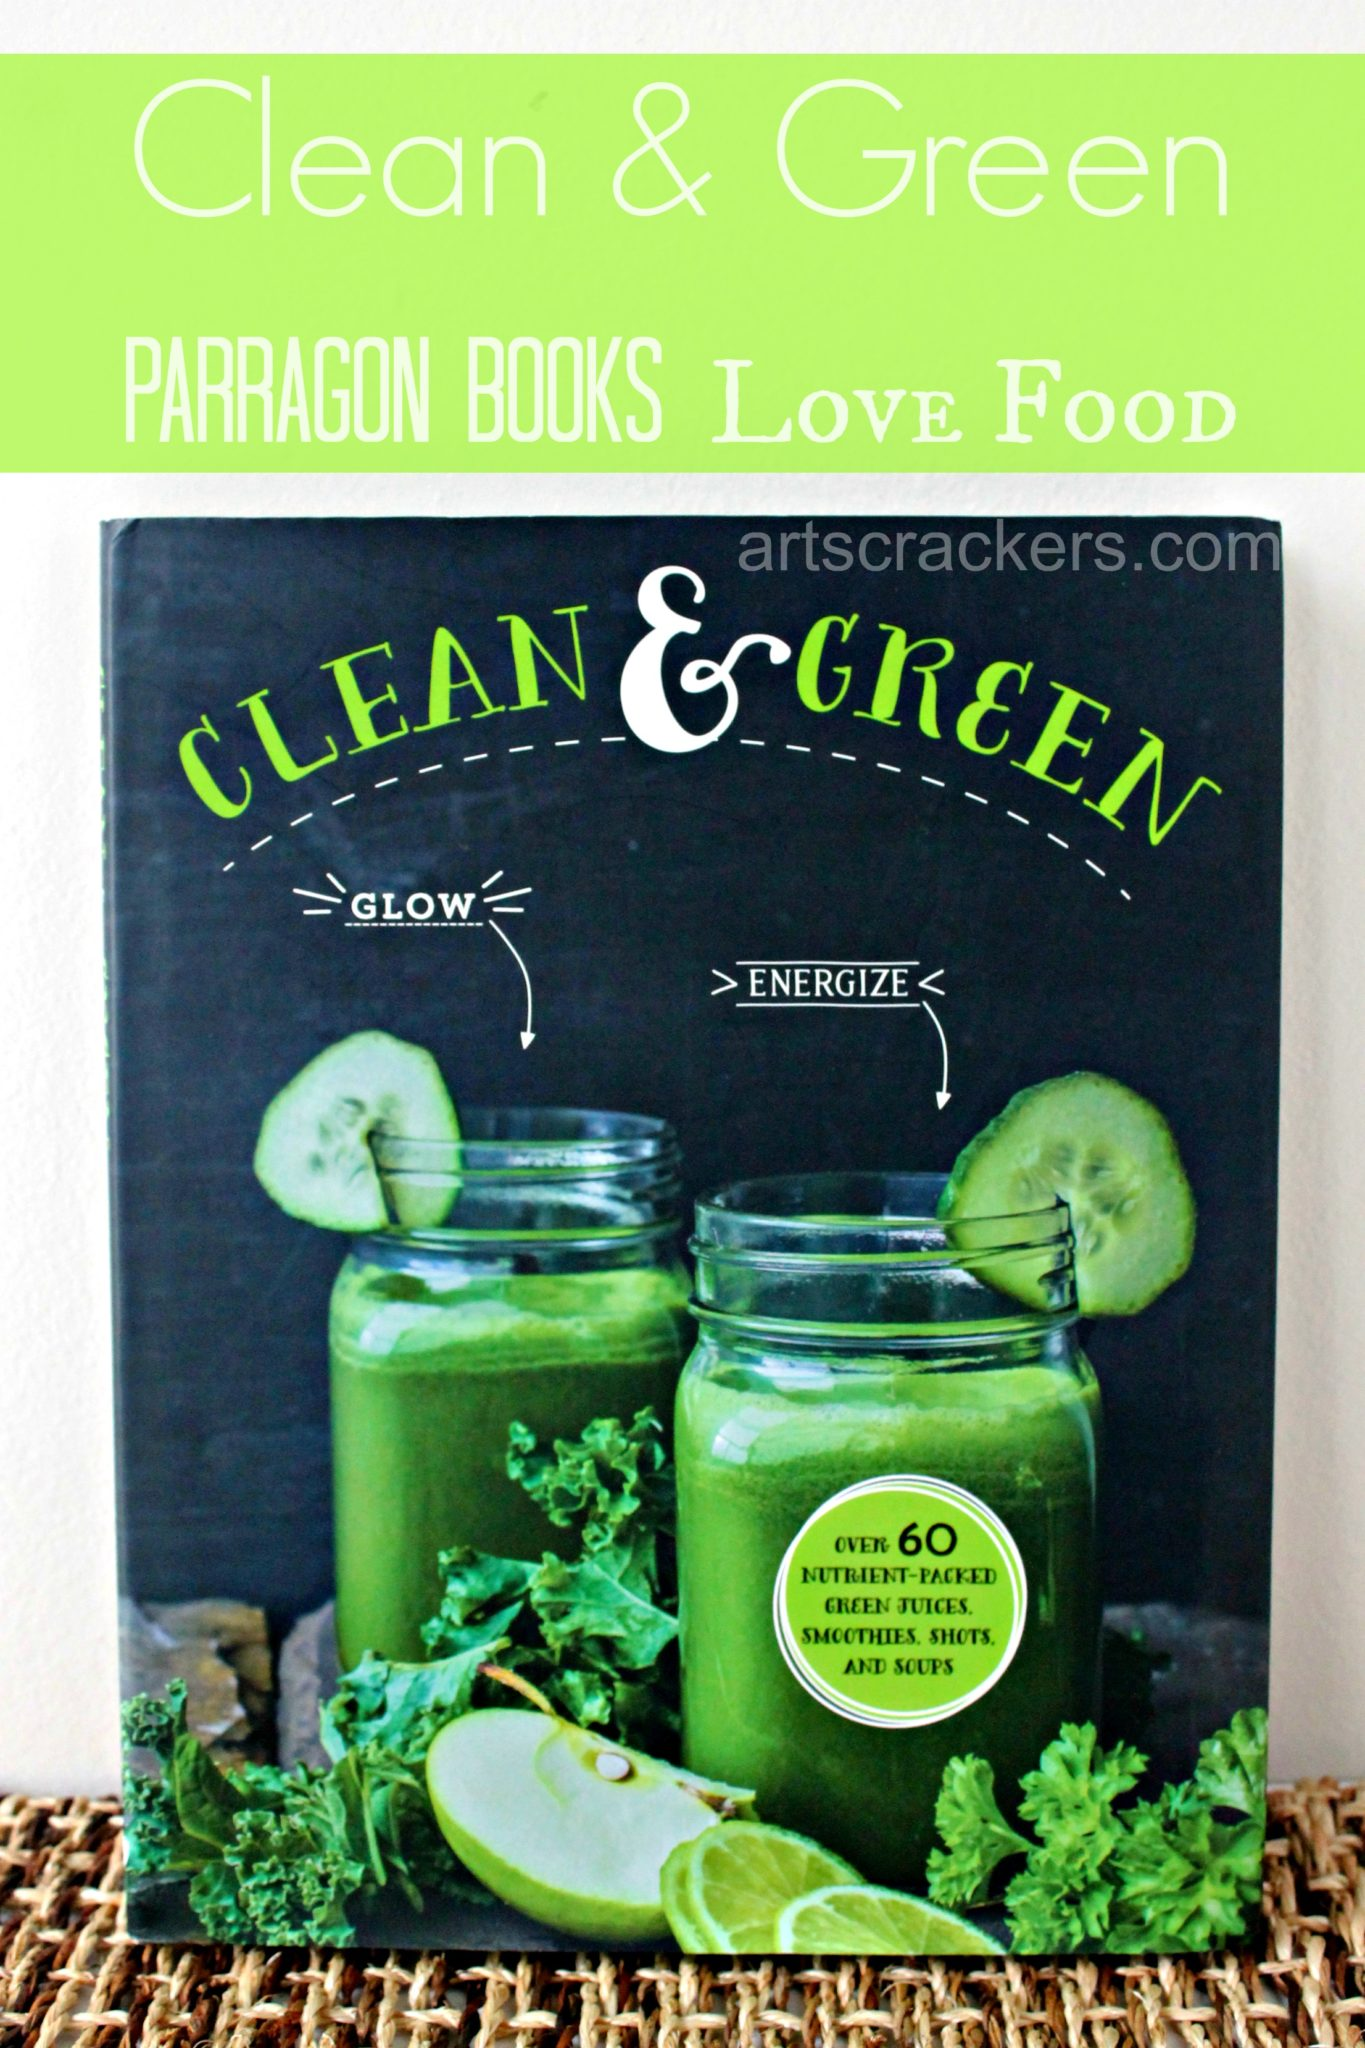 Clean and Green Recipe Book Parragon Books. Click the picture to read the review.